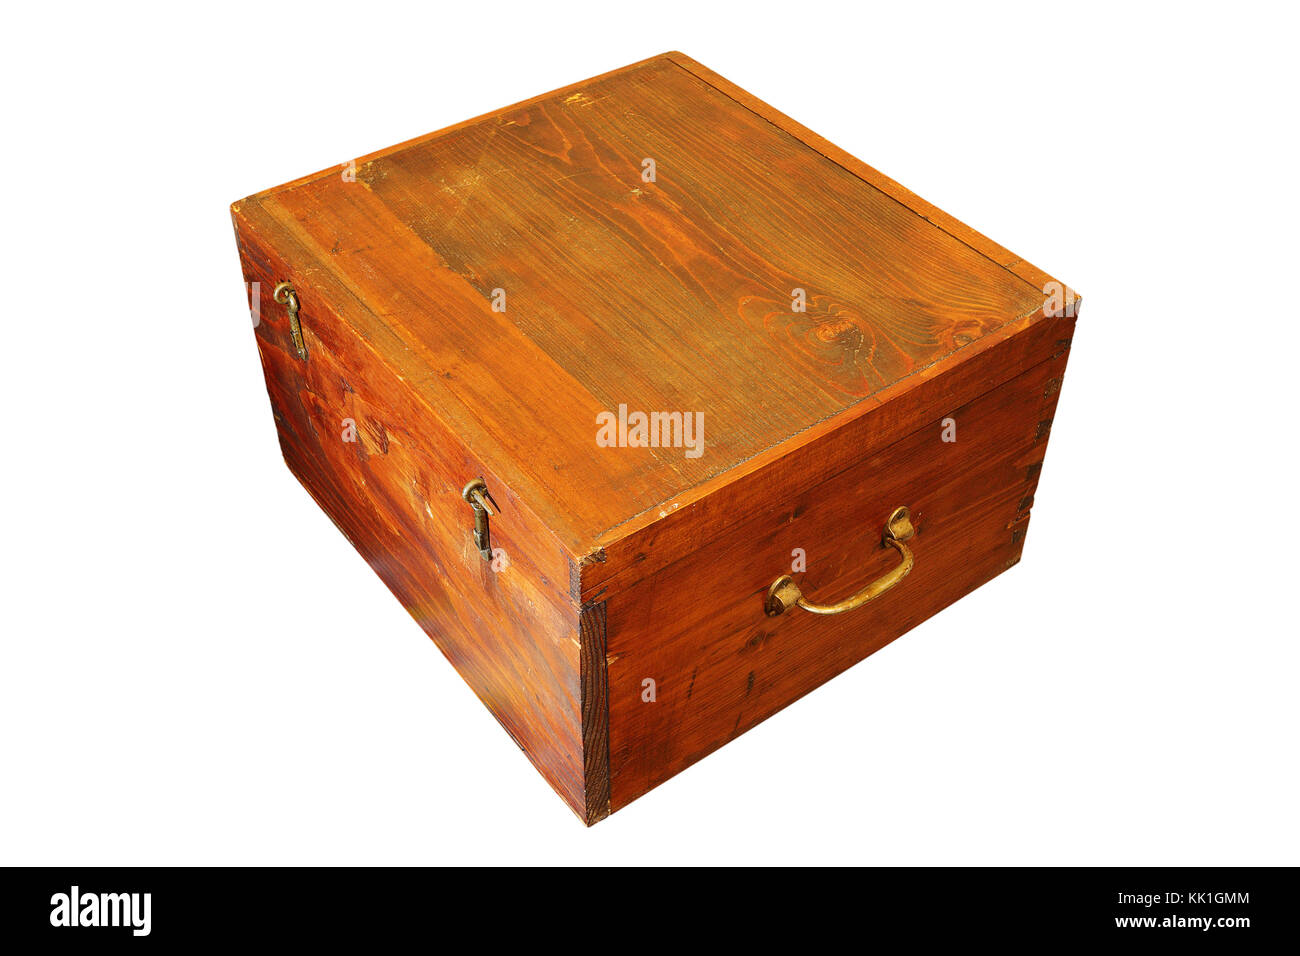 mysterious old wooden treasure chest stock photos